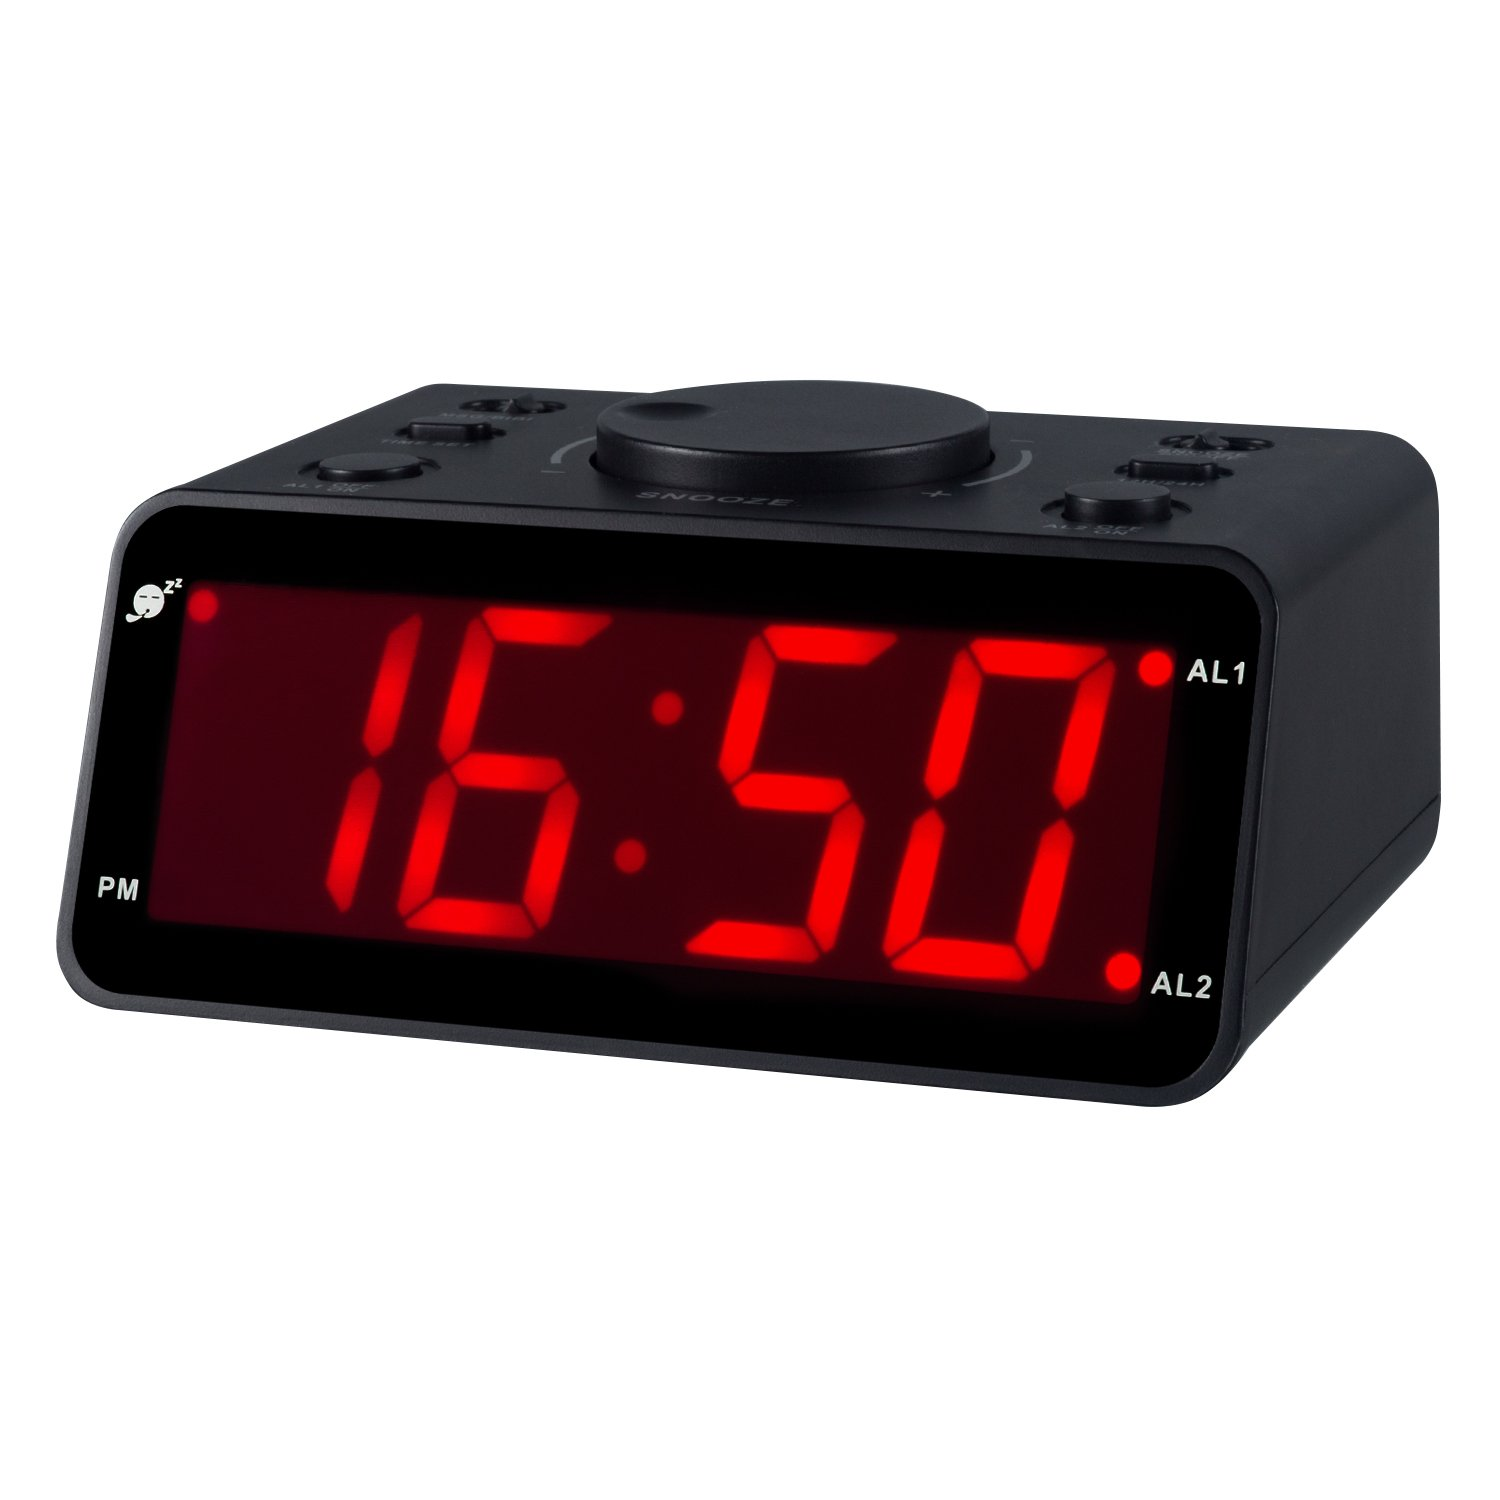 Kwanwa Battery Operated Only Cordless LED Electronic Alarm Clock with Clear Voice Recording Alarm,1.2 inch Red Numbers Display